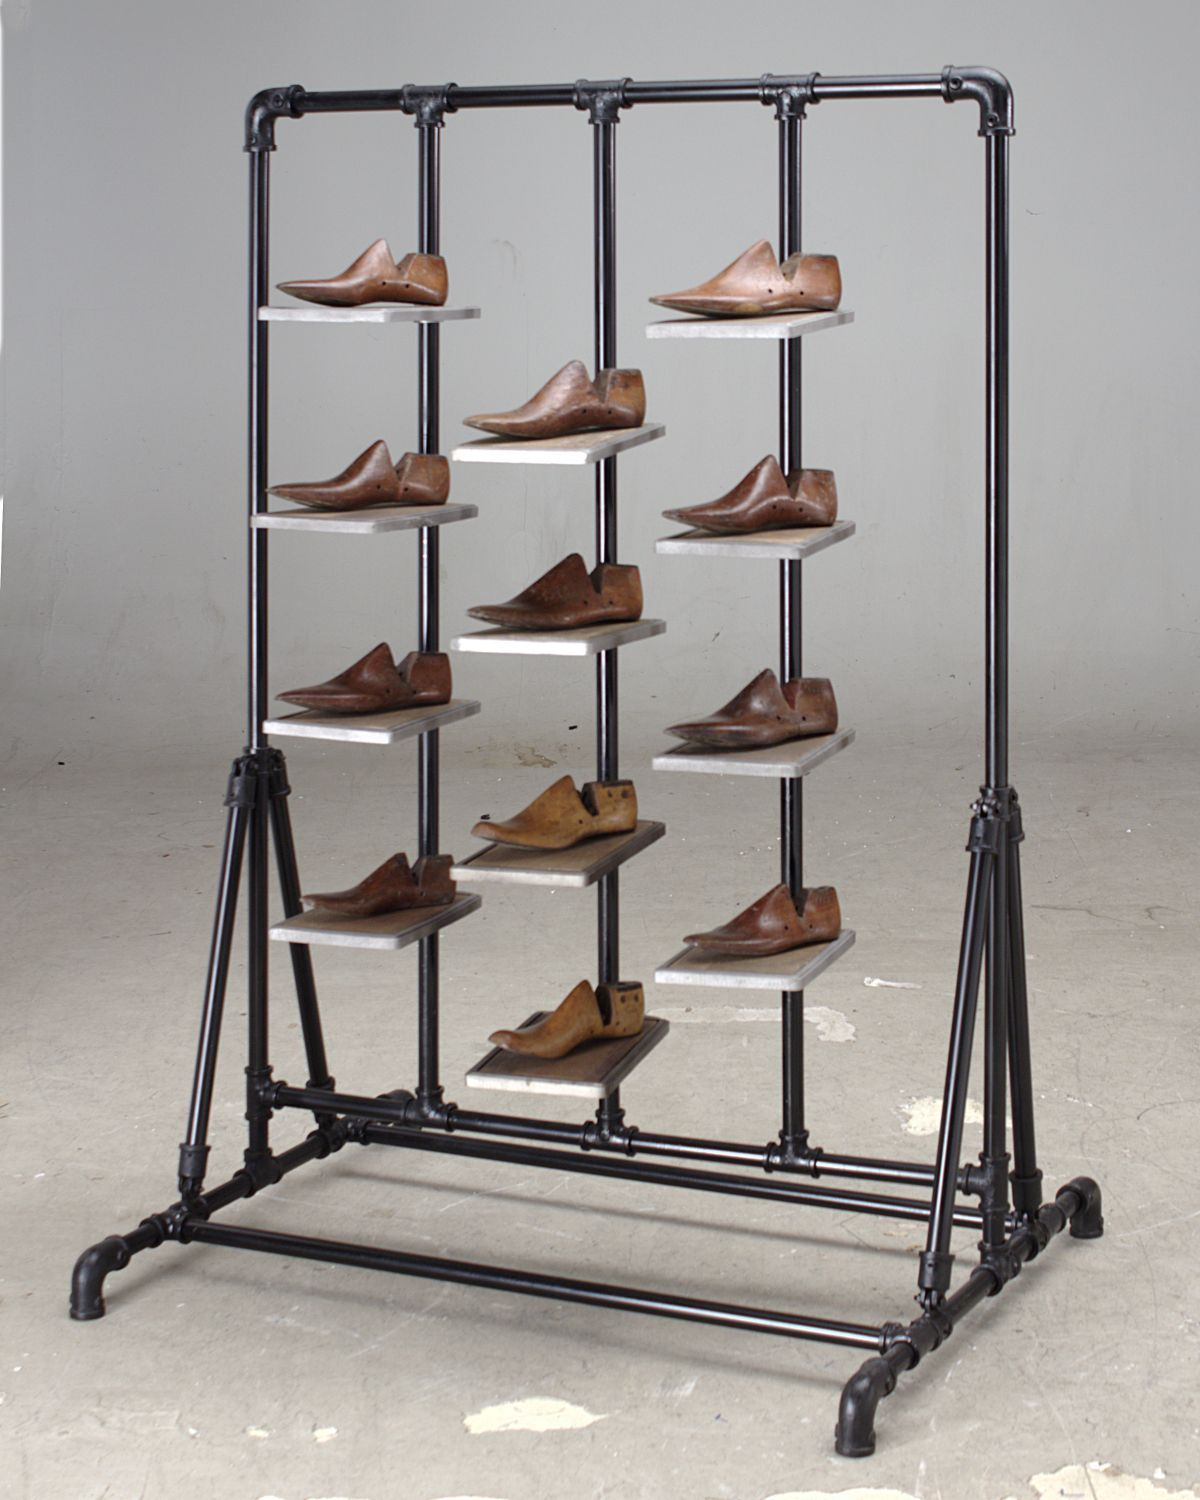 91b38721a55e3 Our ATFUVF779 shoe display stand in scaffold steel and wood shelves ...